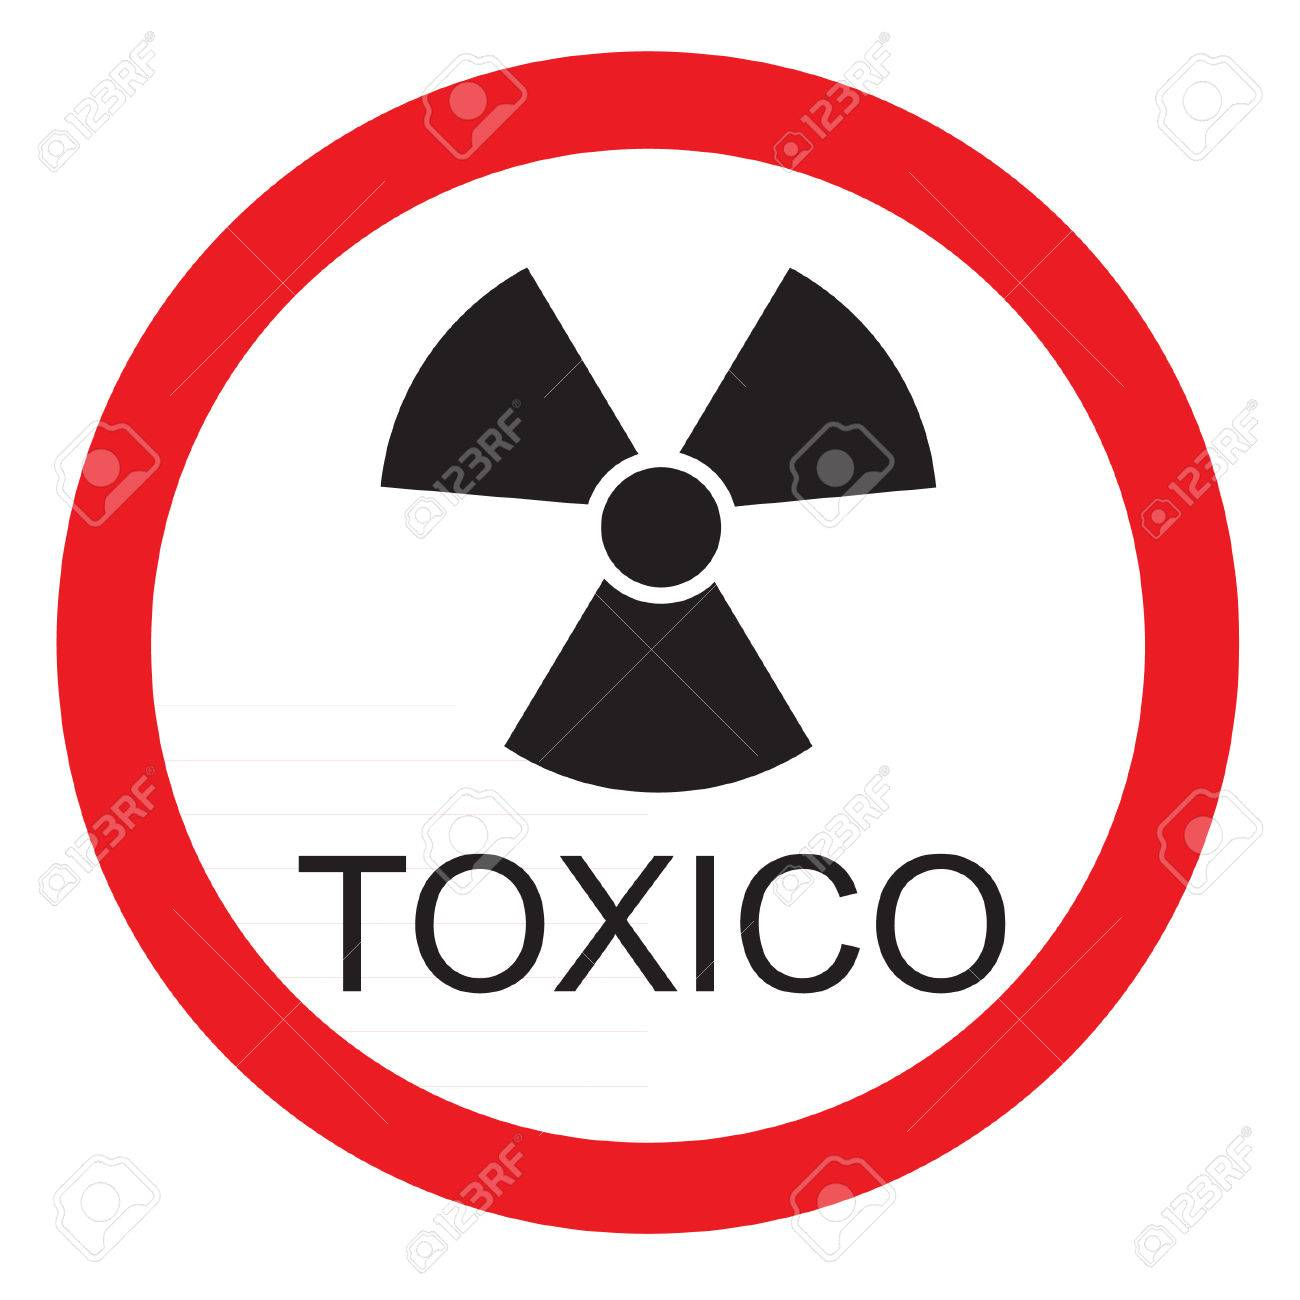 Round warning sign with text in spanish toxic icon isolated round warning sign with text in spanish toxic icon isolated stock vector 40000773 biocorpaavc Images